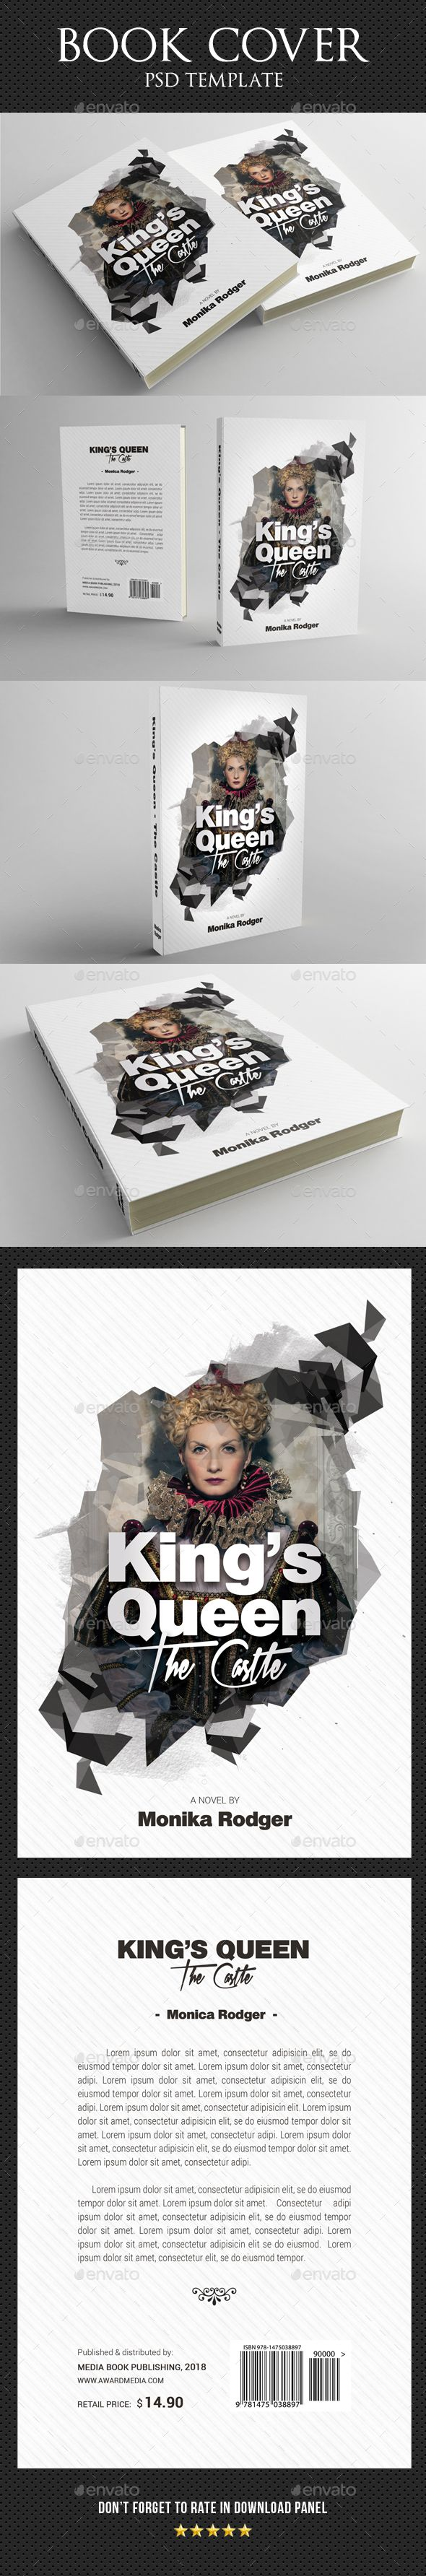 98 best Book Cover Templates images on Pinterest